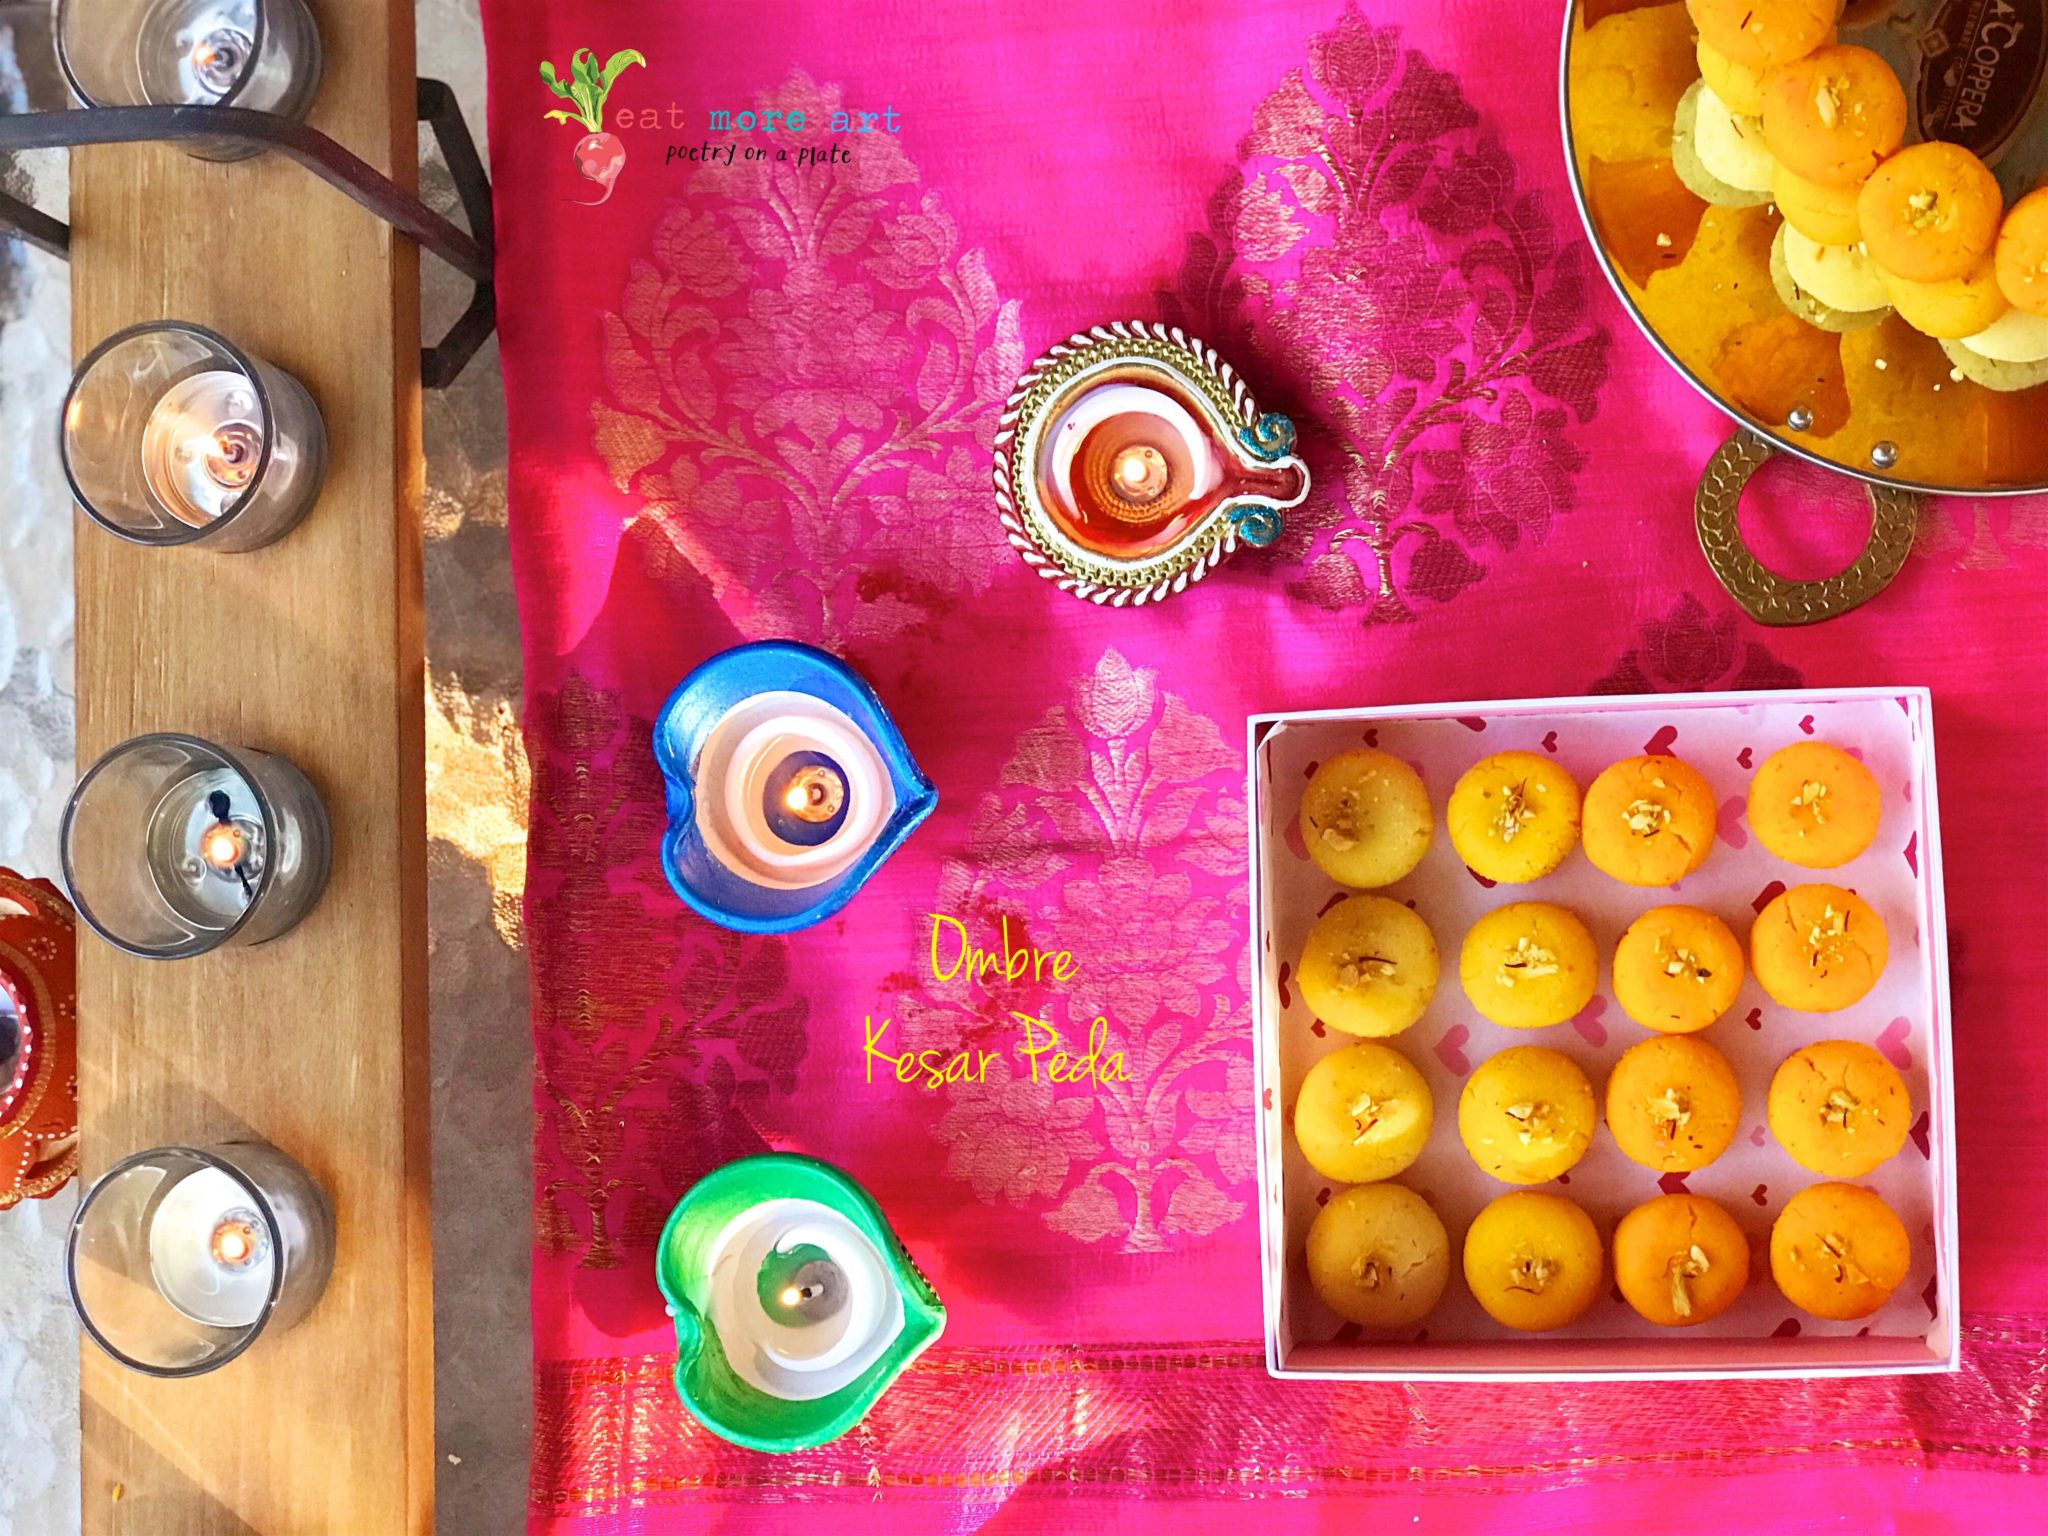 Ombre saffron peda in shades of yellow and orange arranged in a box on a hot pink background surrounded by tea lights